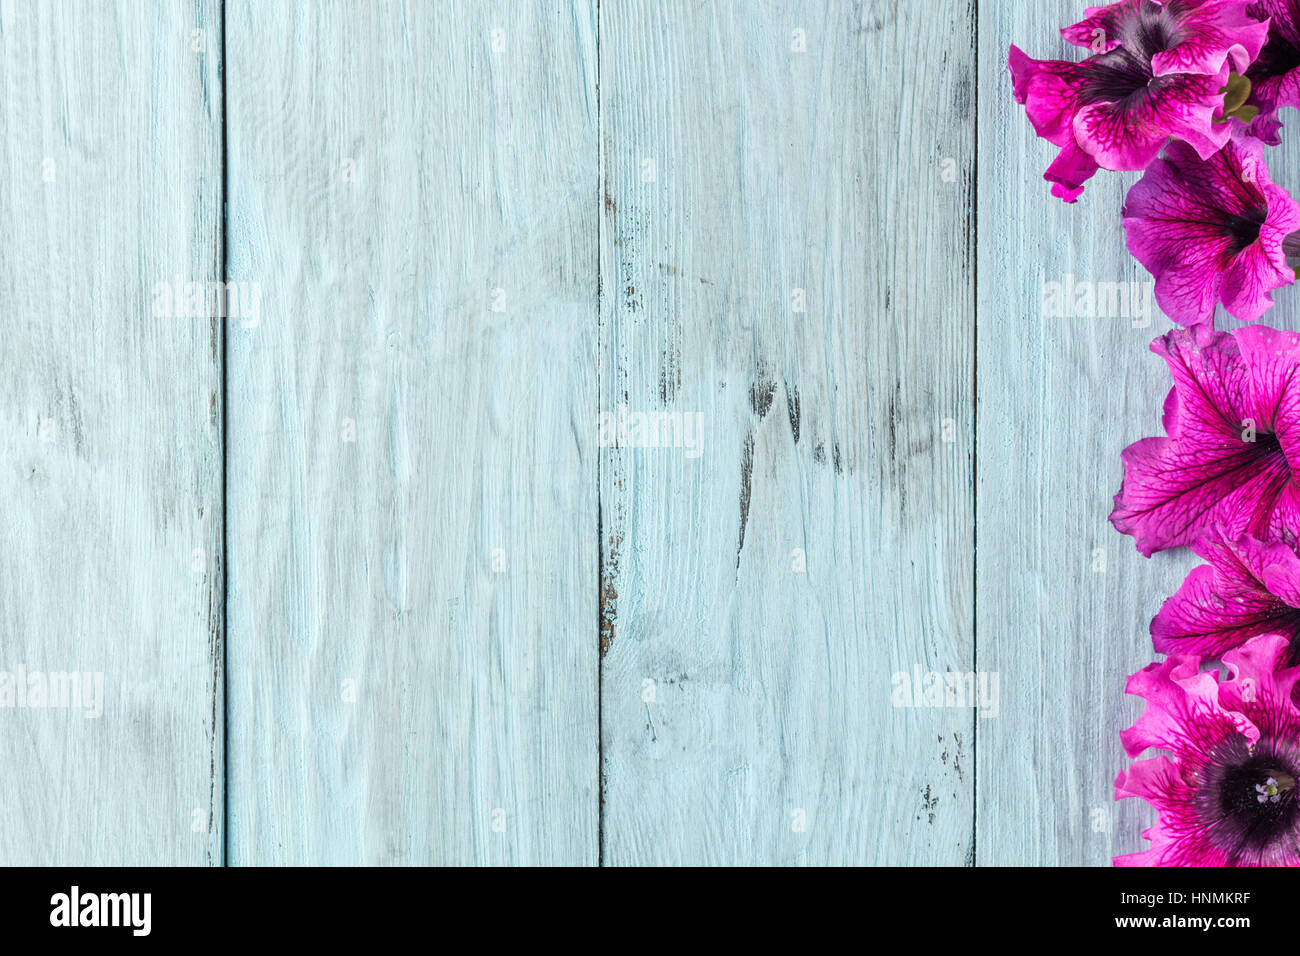 frame of flowers, background blue boards Stock Photo: 133834947 - Alamy